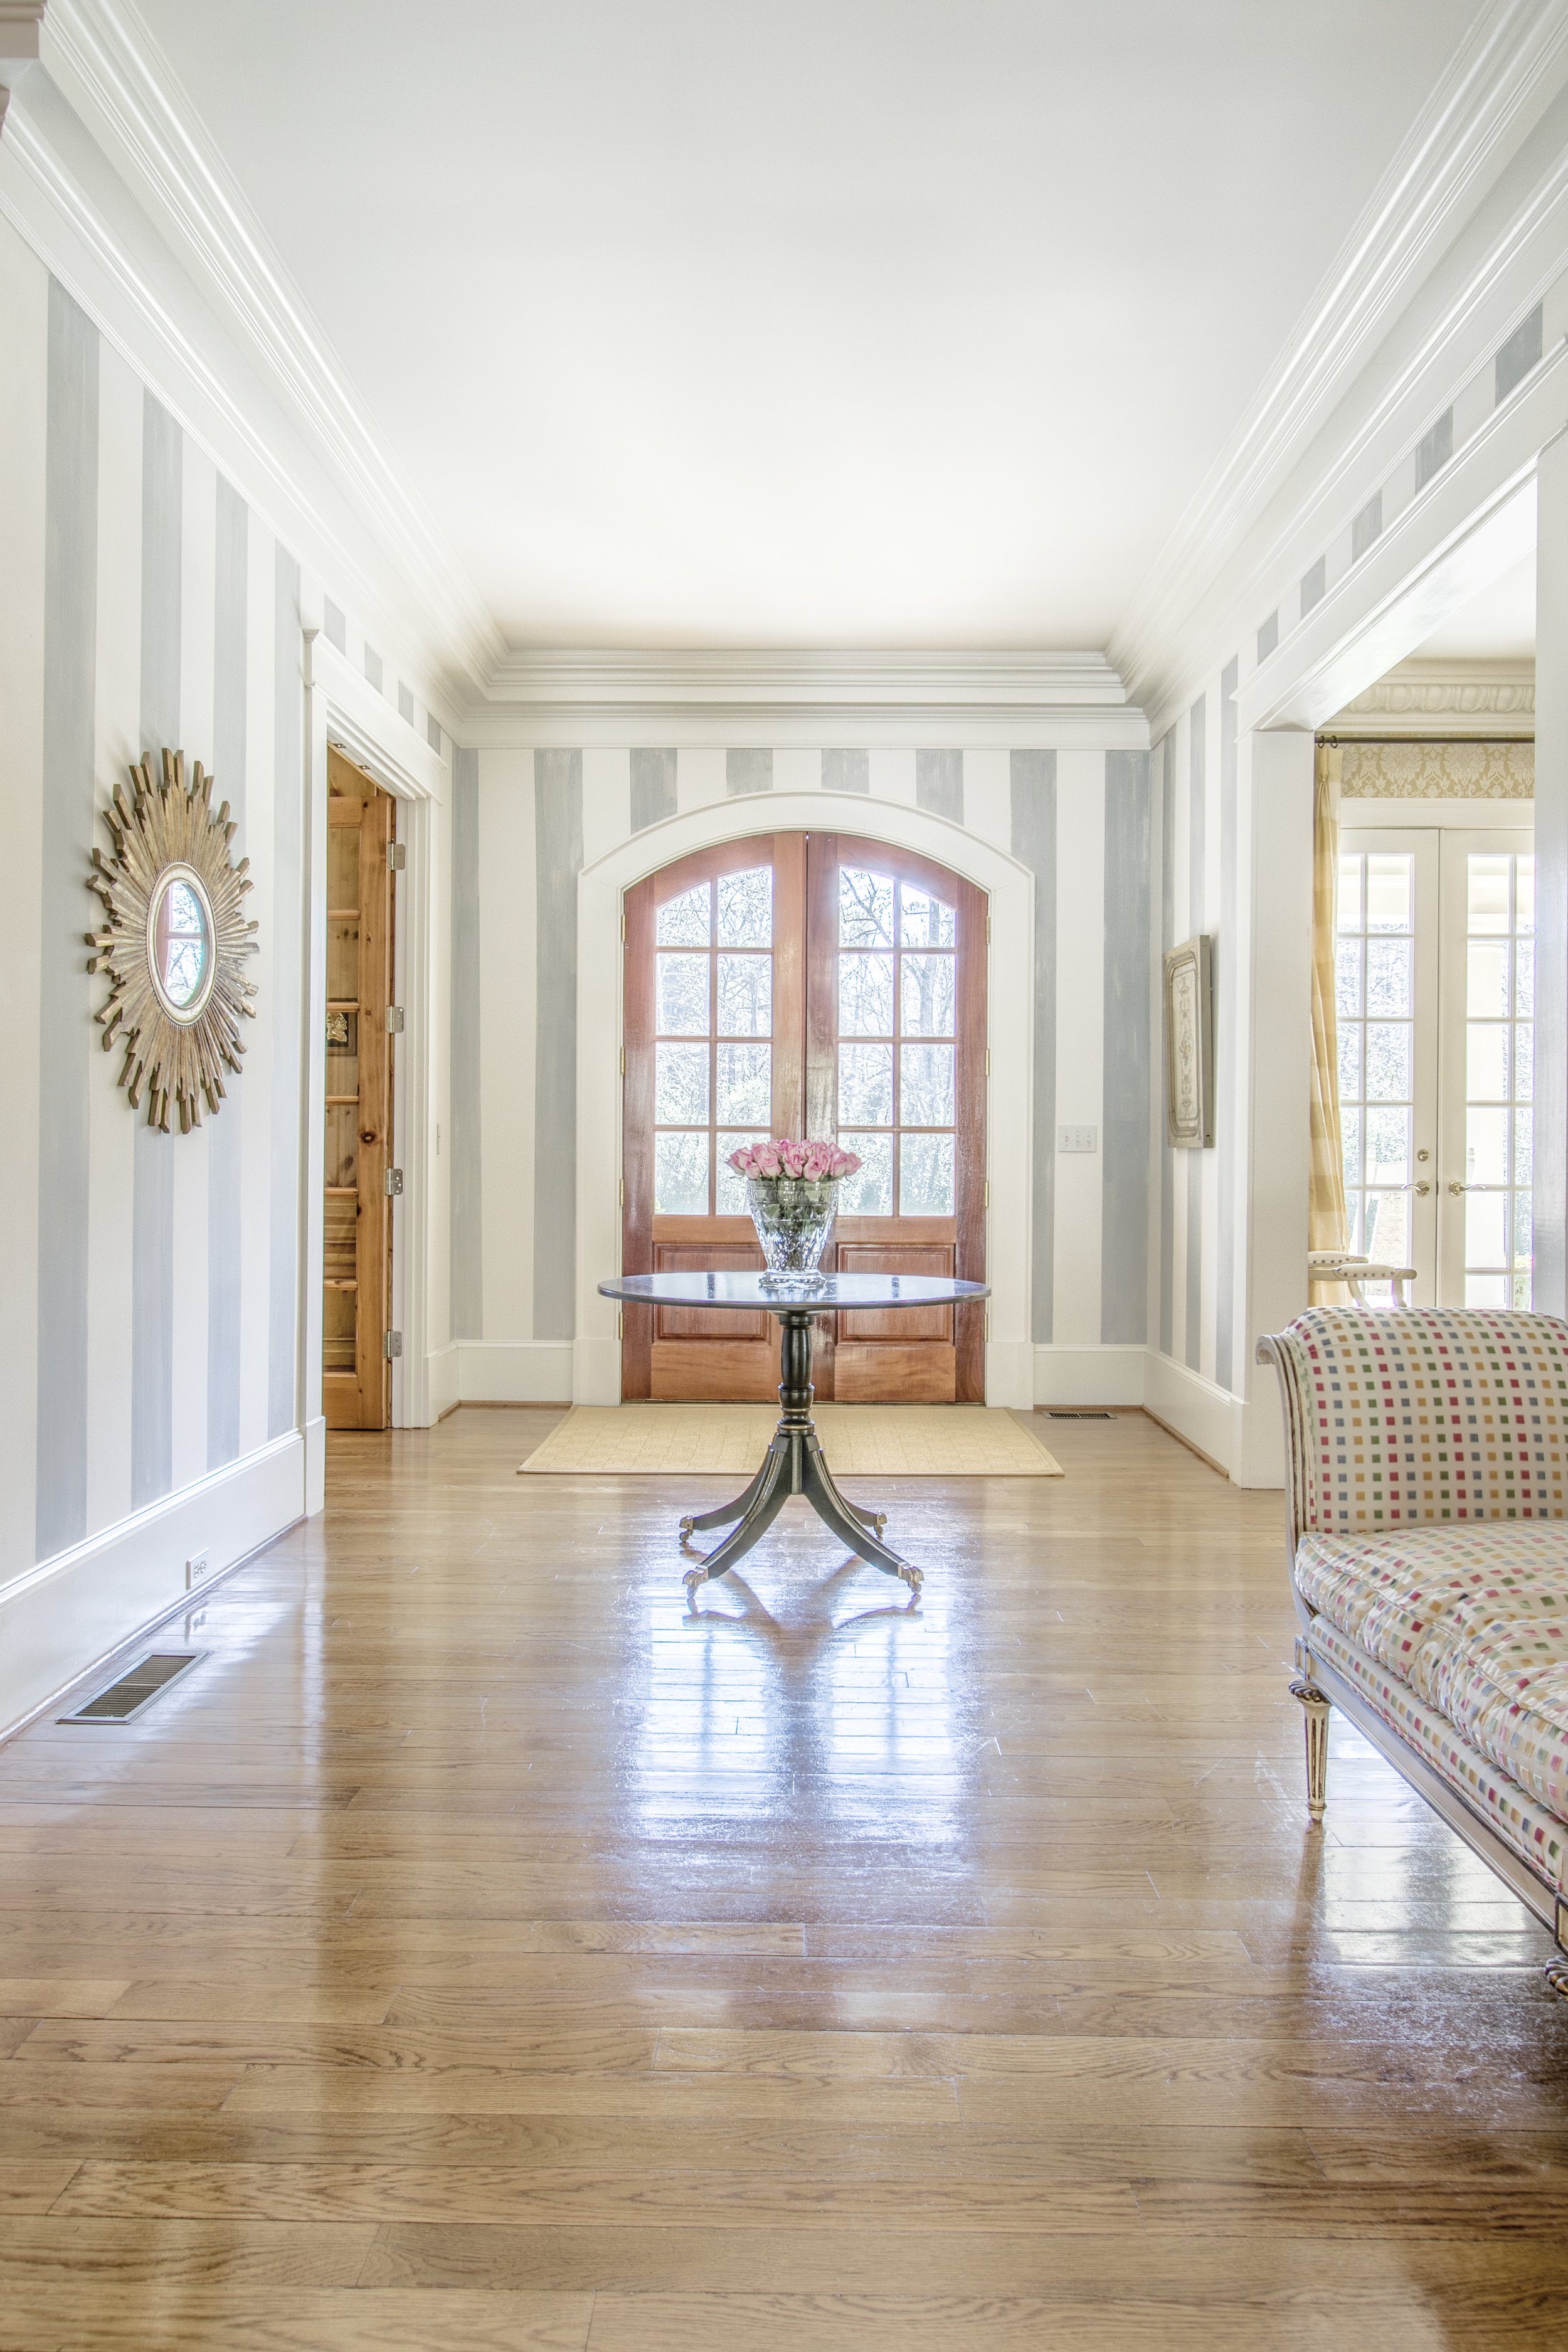 Entry Hall with striped wallpaper and flowers and a round table.  Sunburst Mirror.